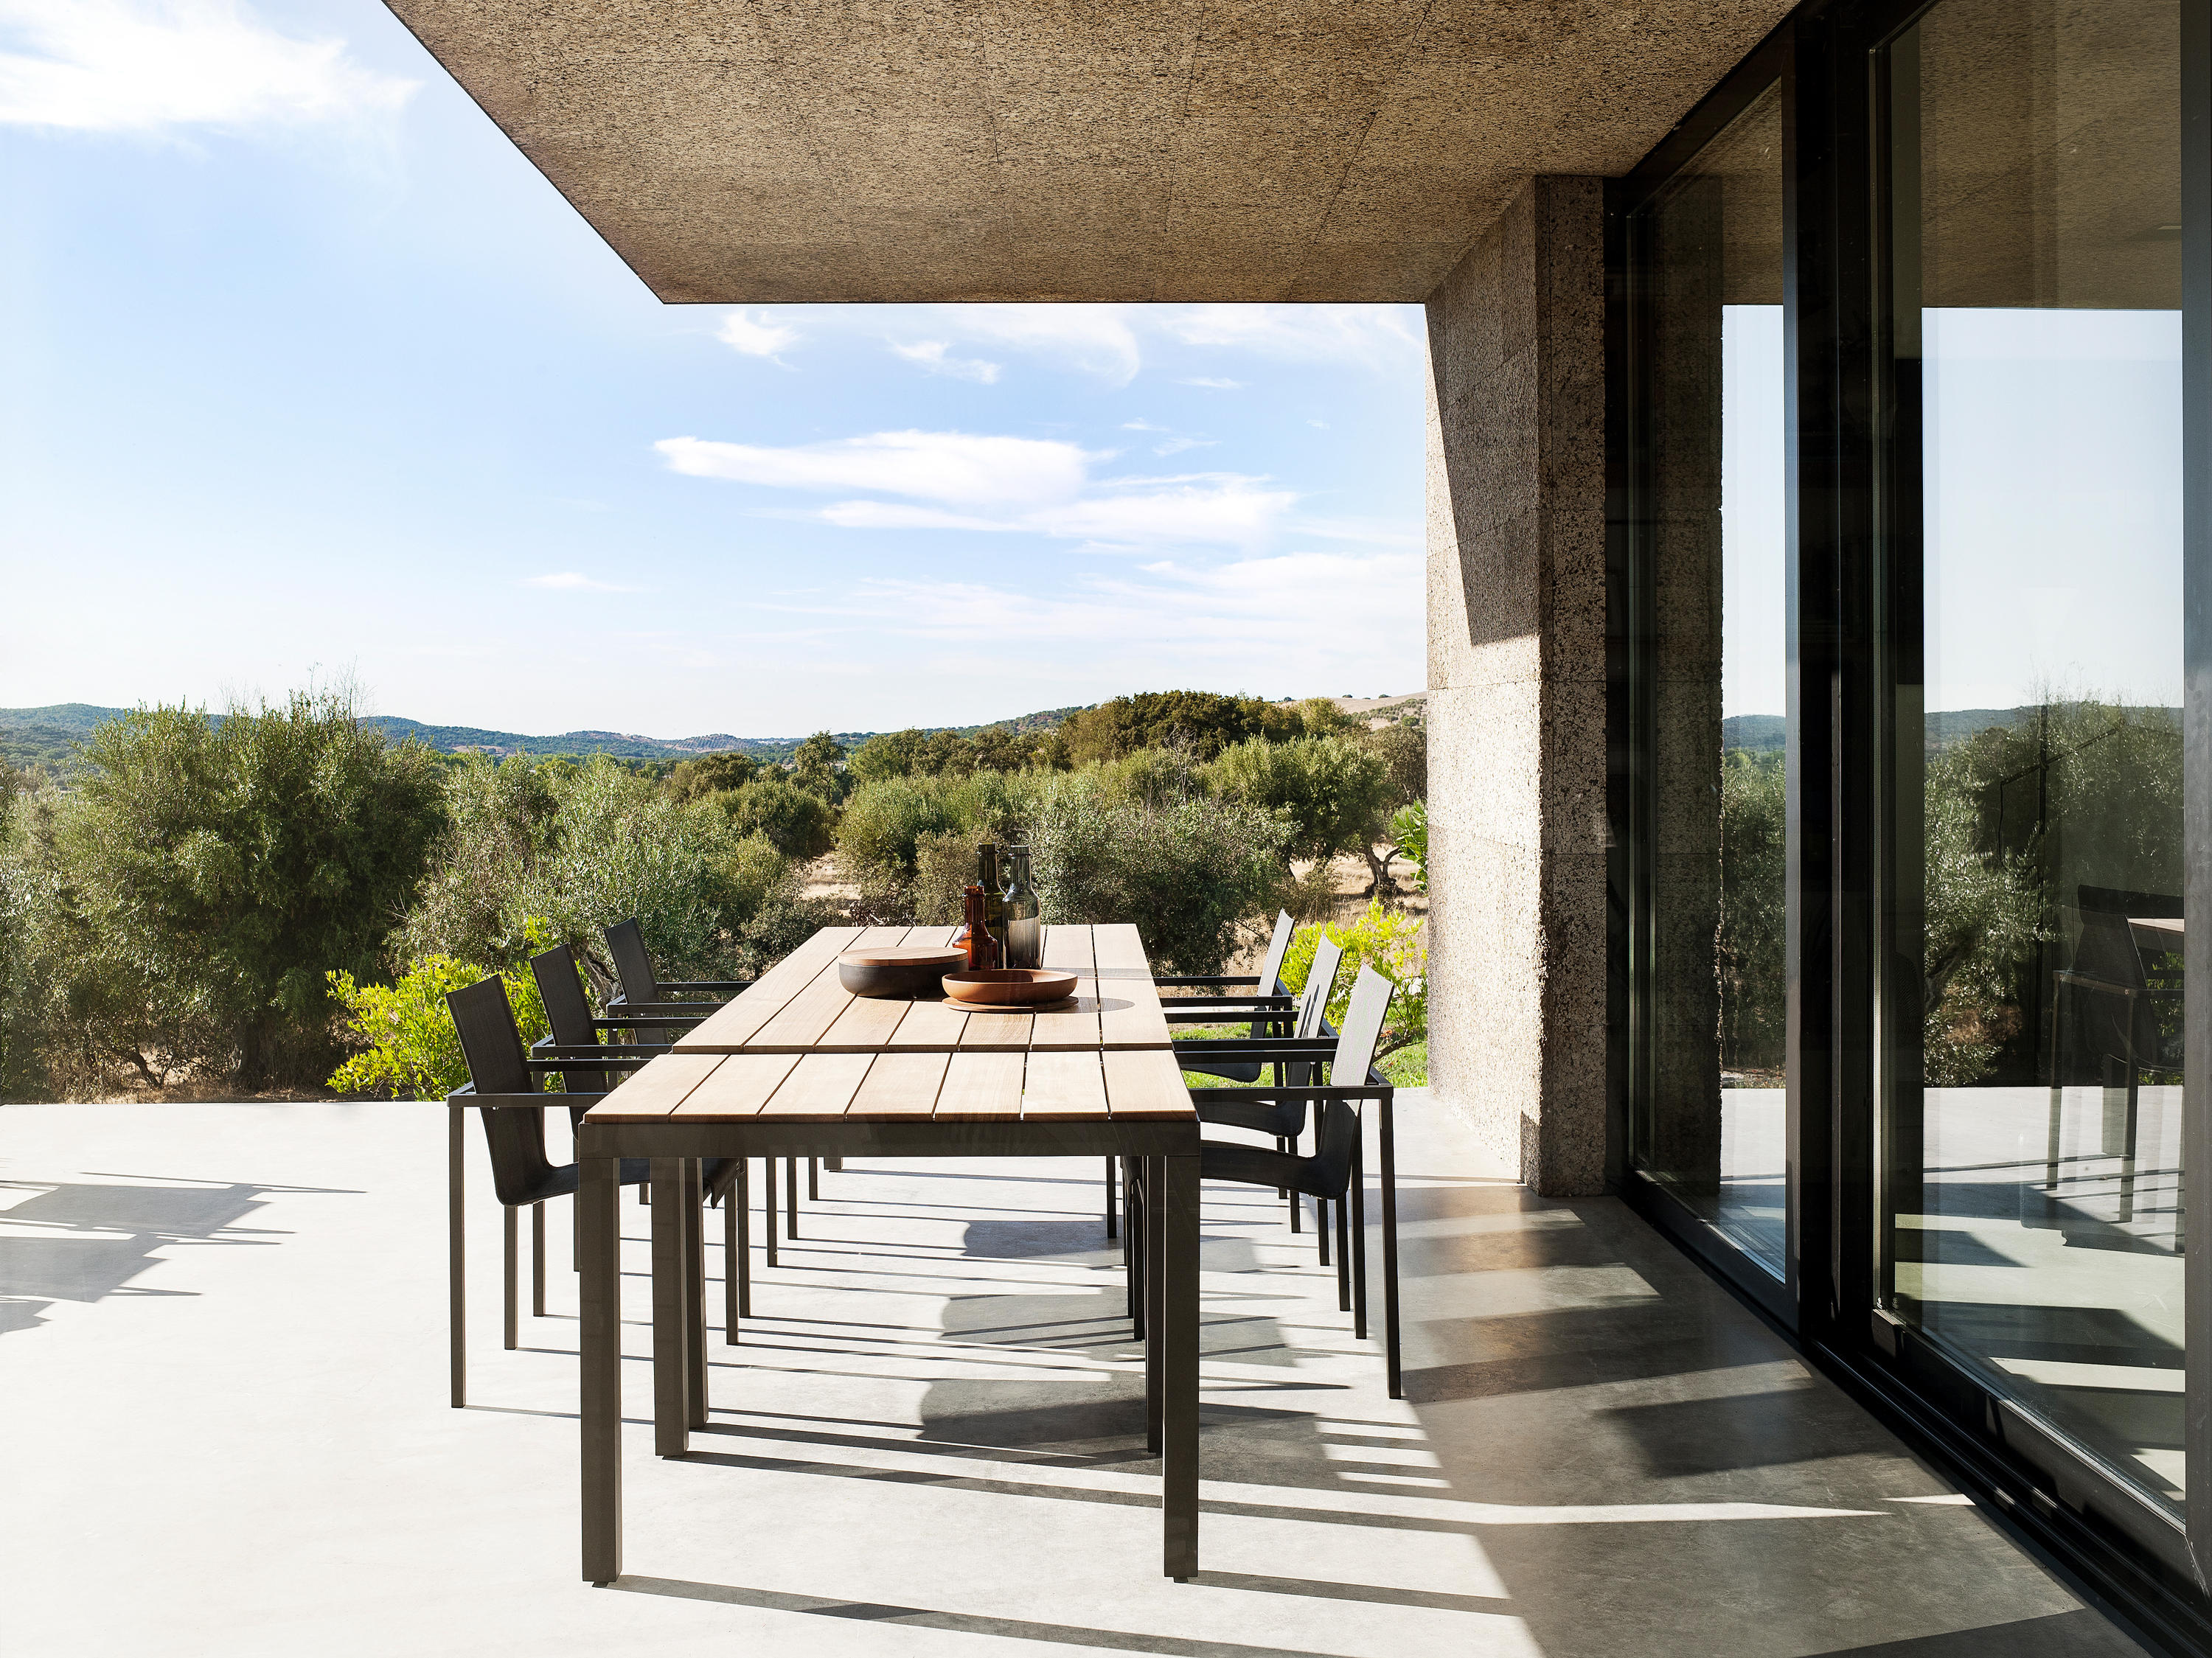 natal alu teak armchair - garden chairs from tribù | architonic, Terrassen ideen